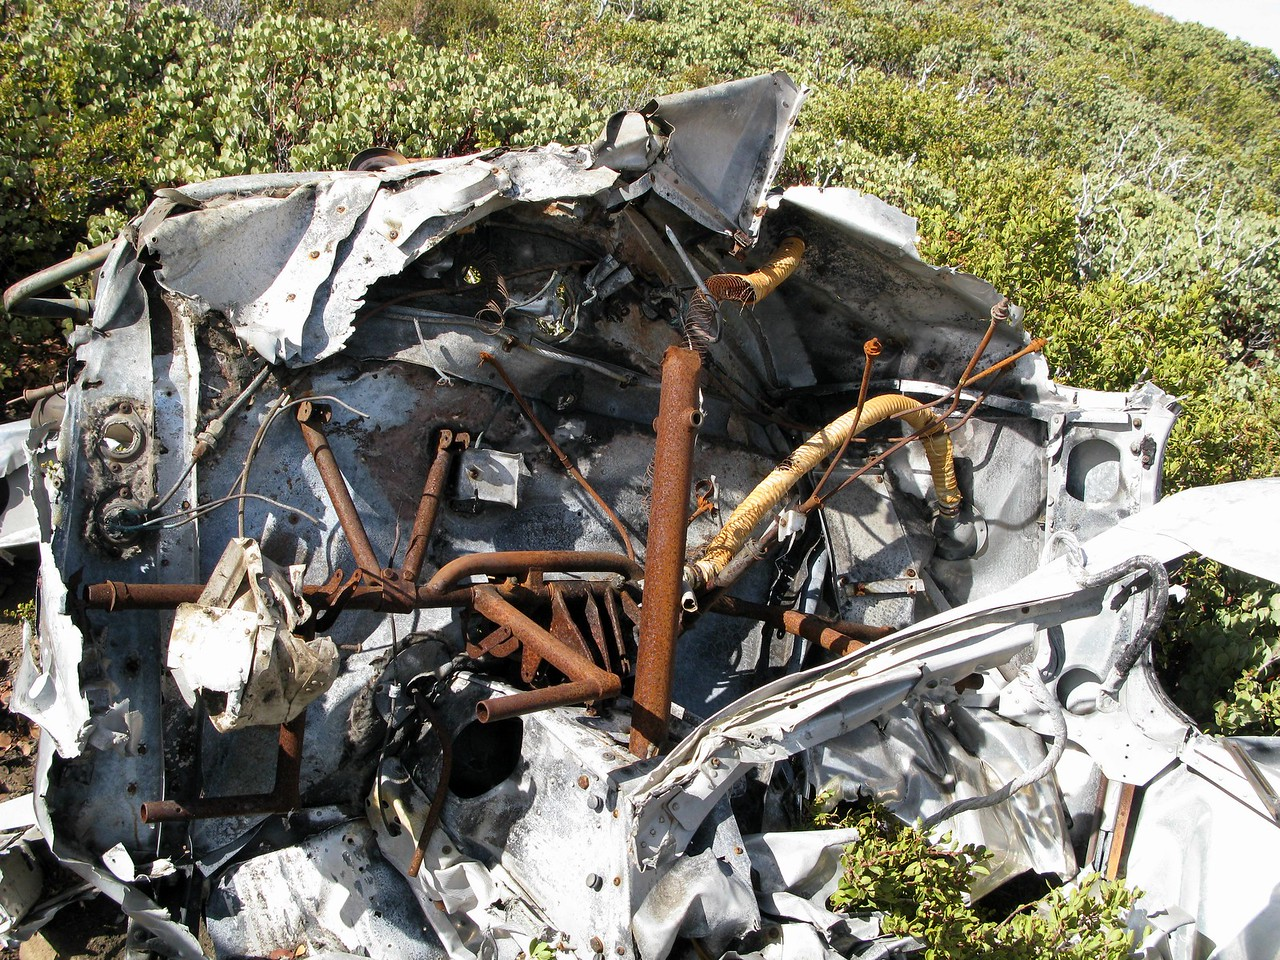 The cockpit of the Piper showed evidence of substantial impact damage as well as fire.